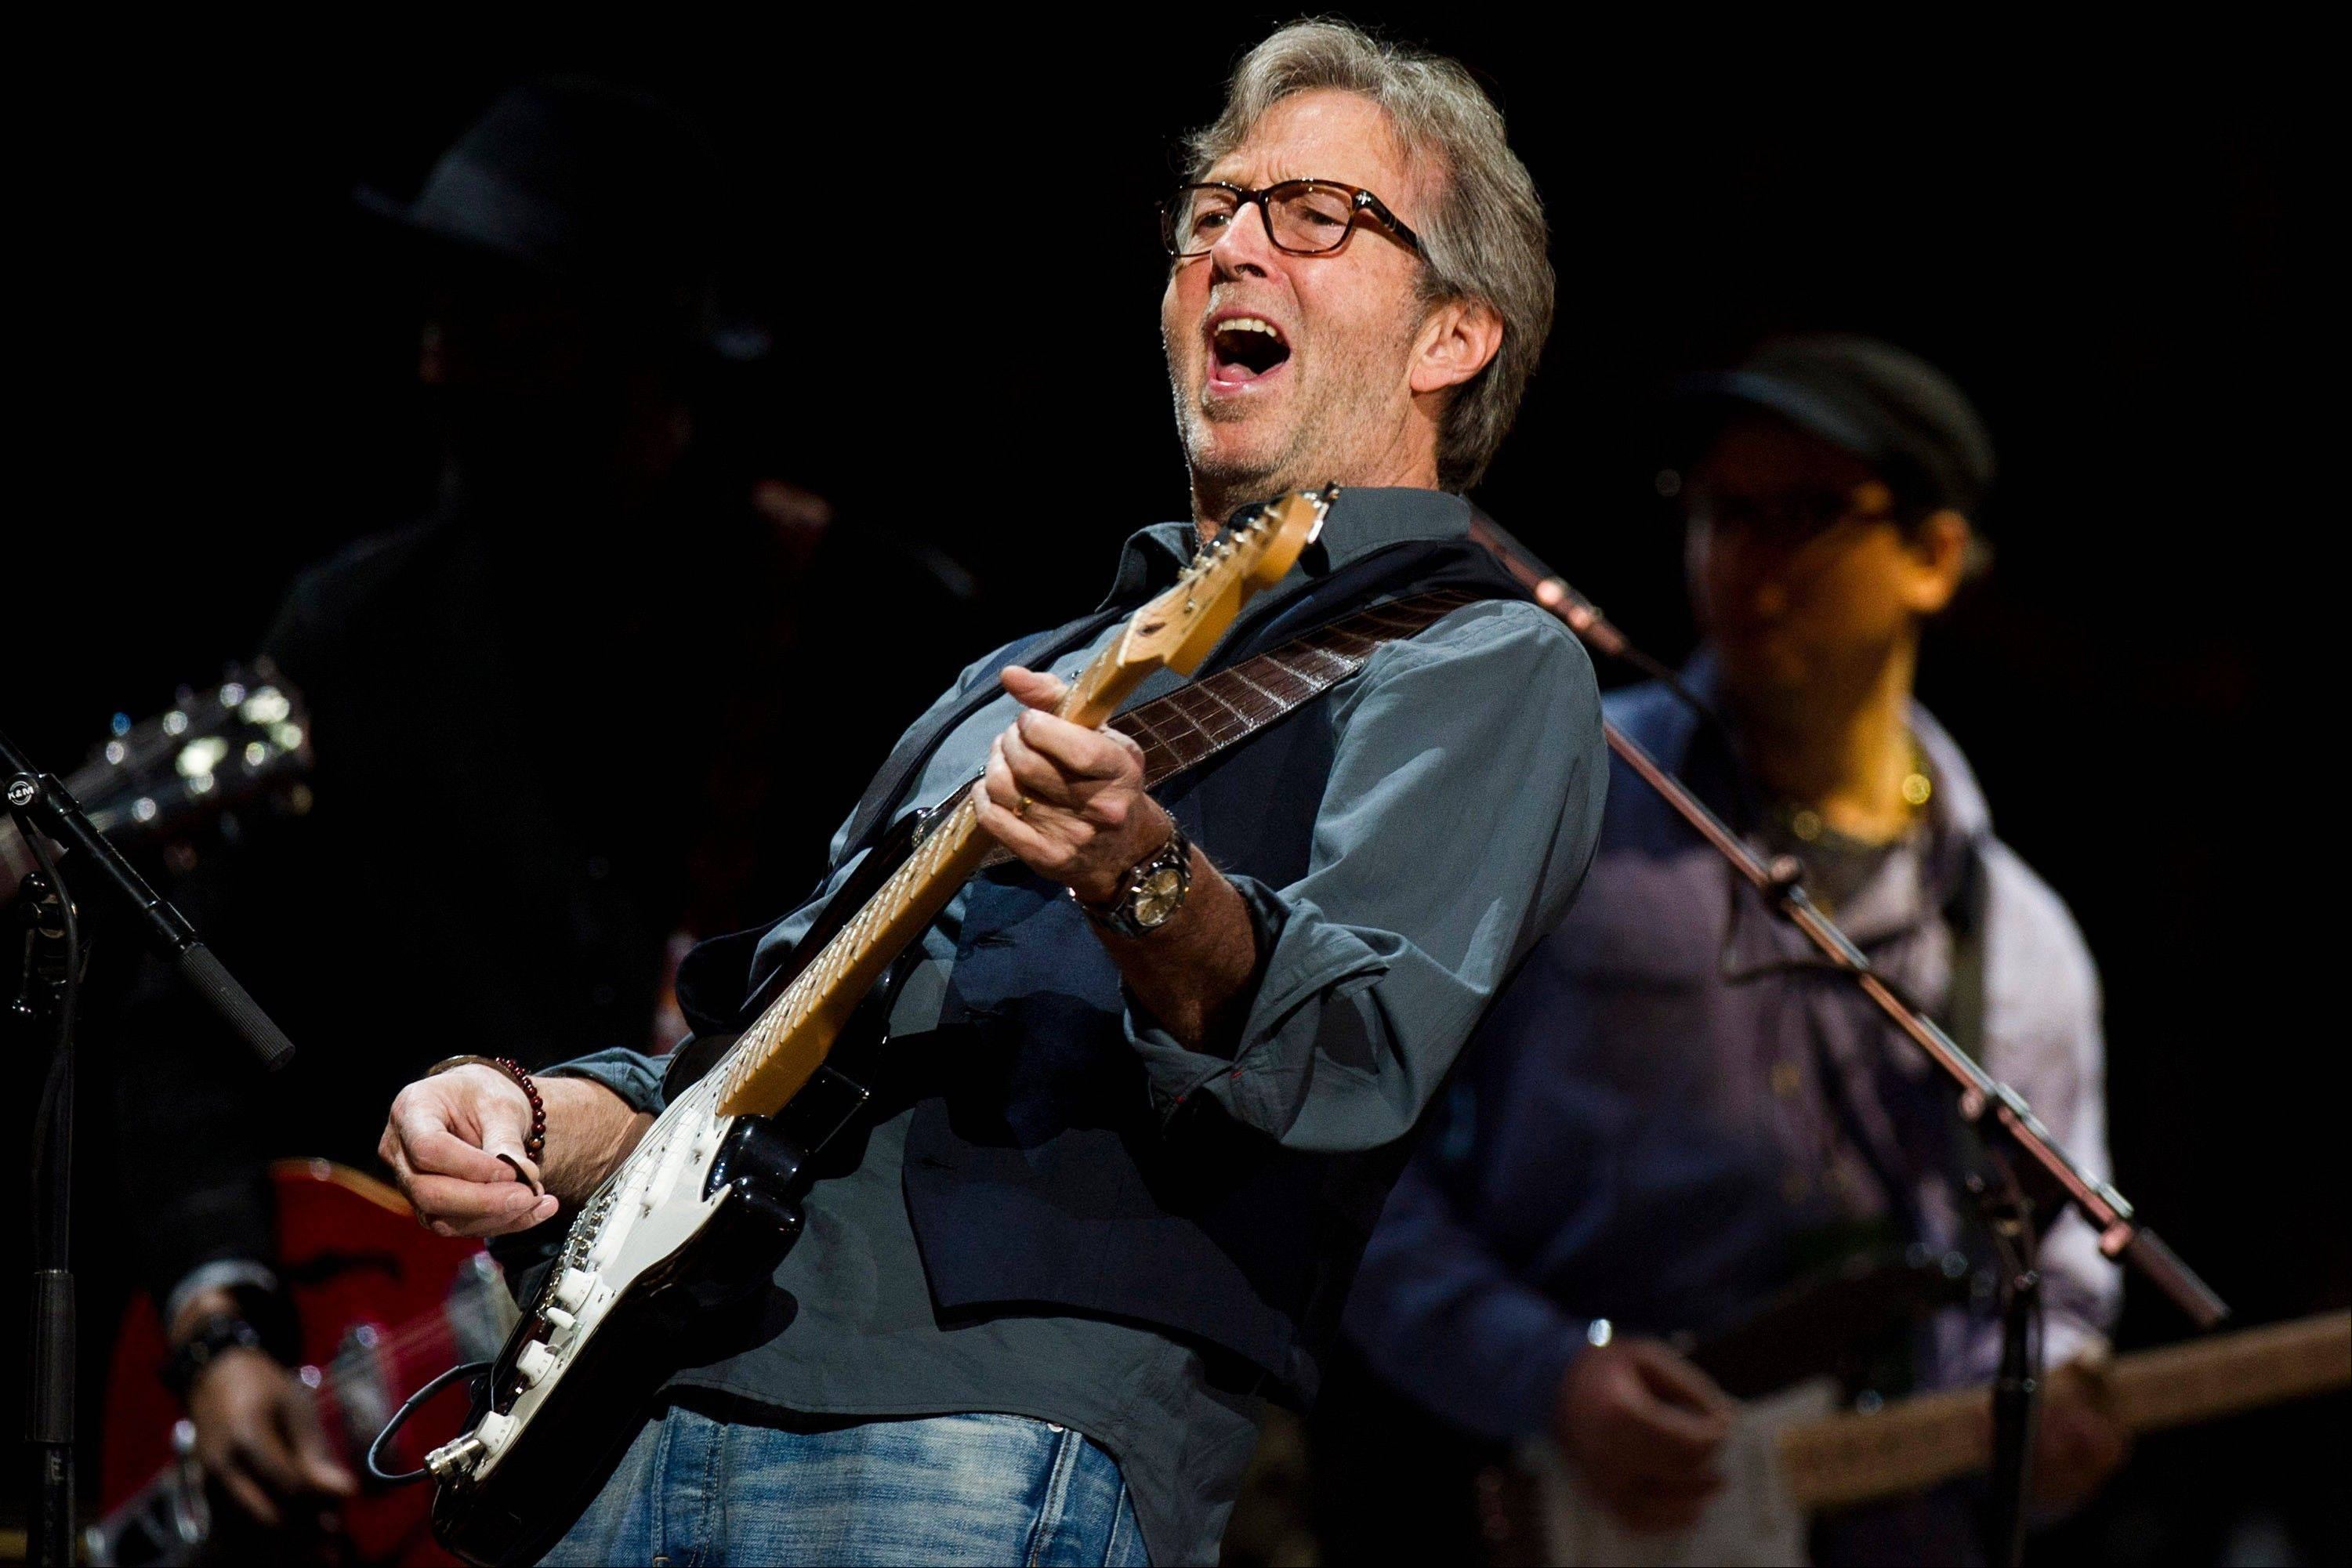 Eric Clapton performs at his Crossroads Guitar Festival 2013 at Madison Square Garden.